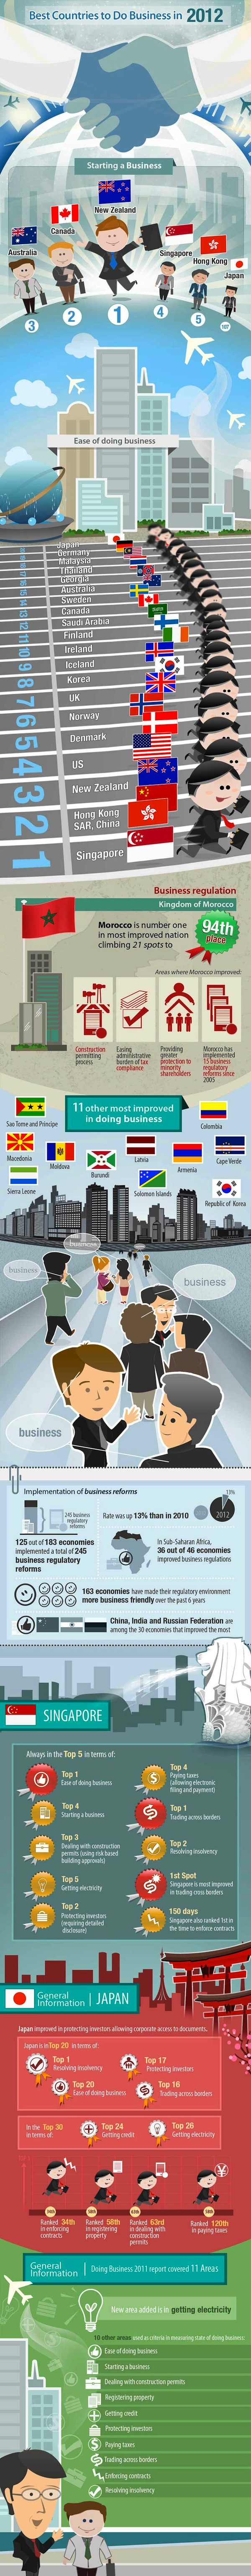 Best Countries to Do Business in 2012